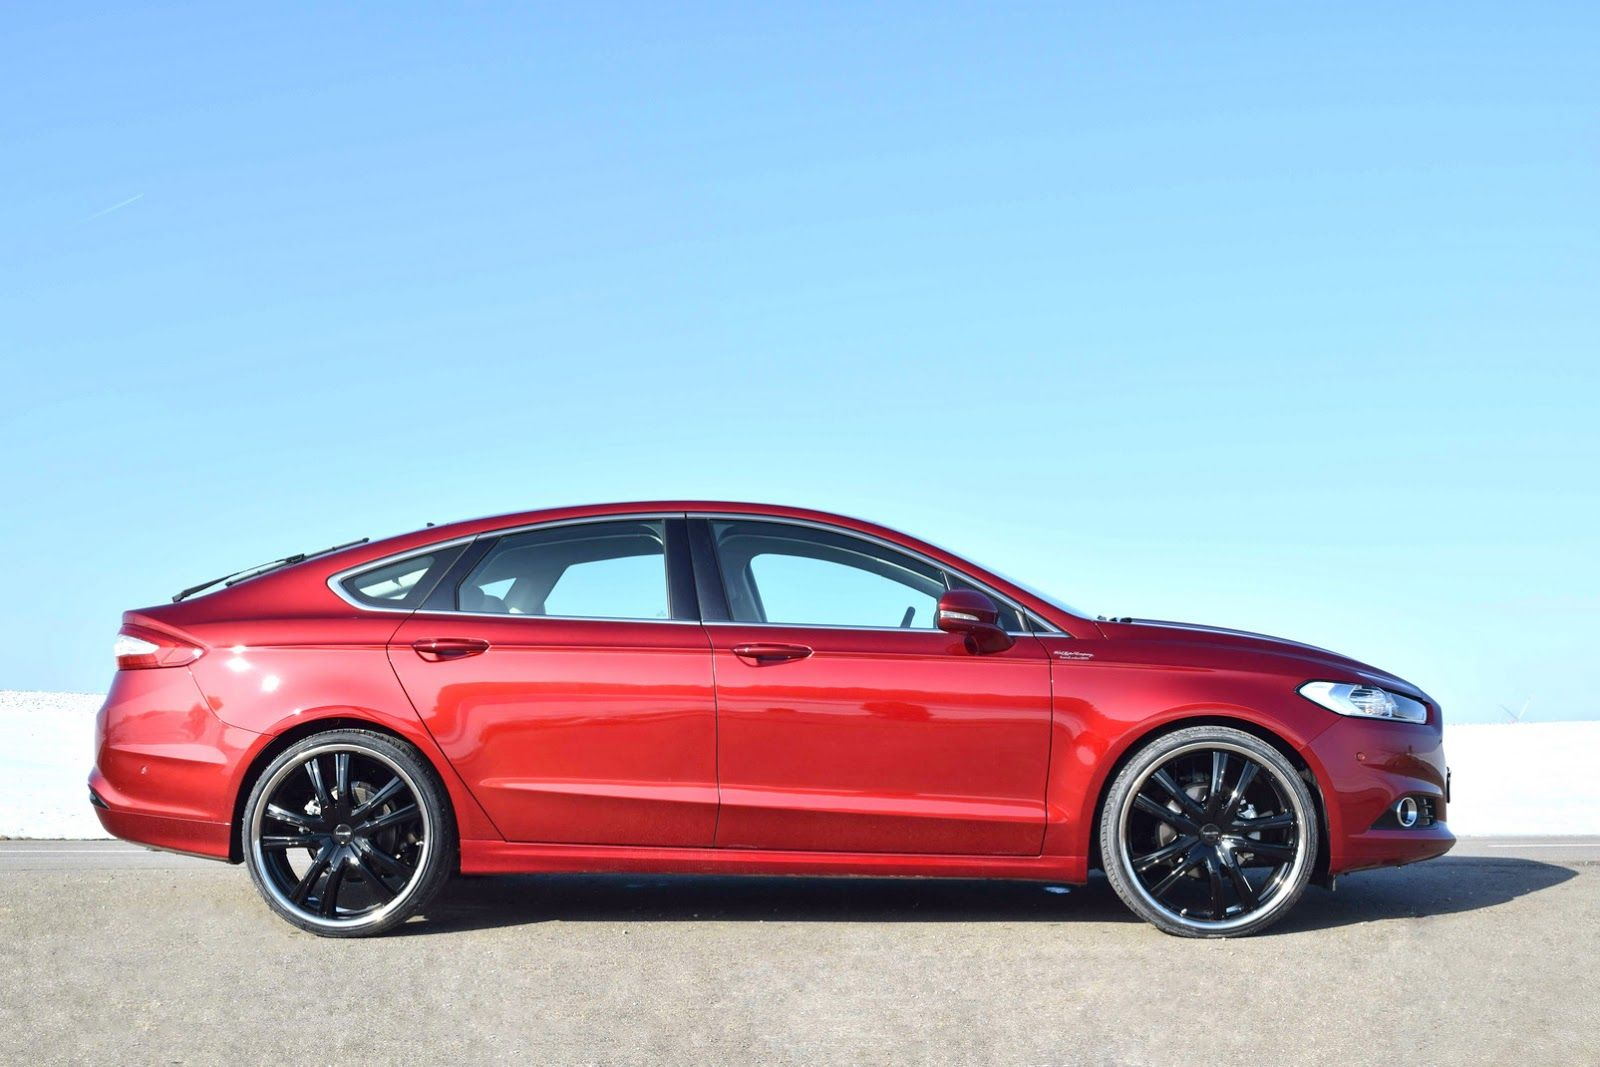 Too Much Loder1899 Gives New Ford Mondeo 22 Inch Wheels Carscoops Ford Mondeo Ford Ford Fusion Custom